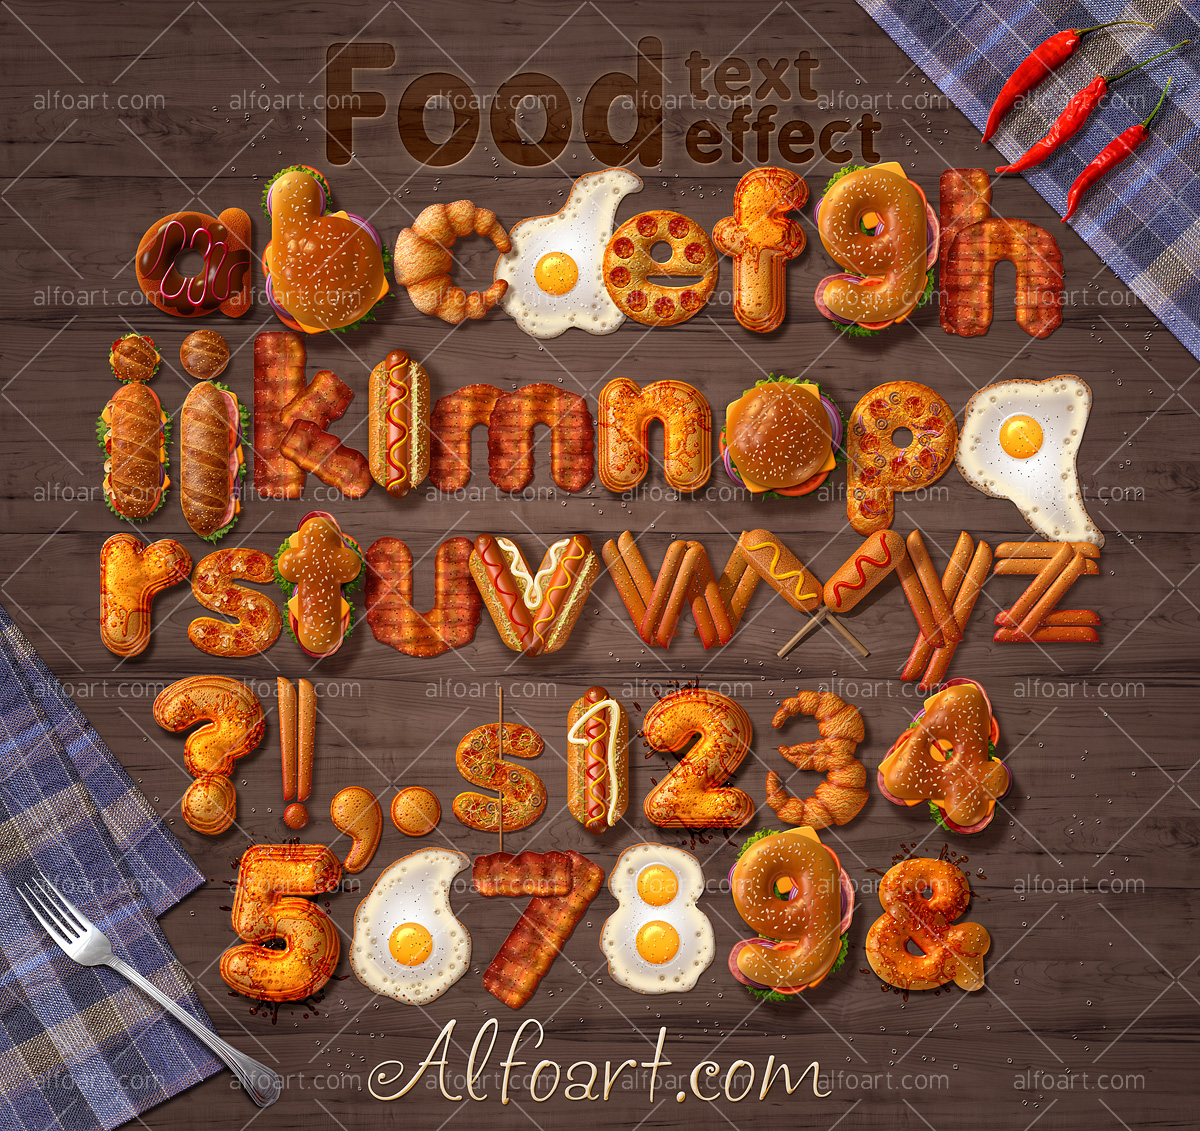 learn how to create 3d fast food text effect this adobe photoshop learn how to create 3d fast food text effect this adobe photoshop tutorial teaches how